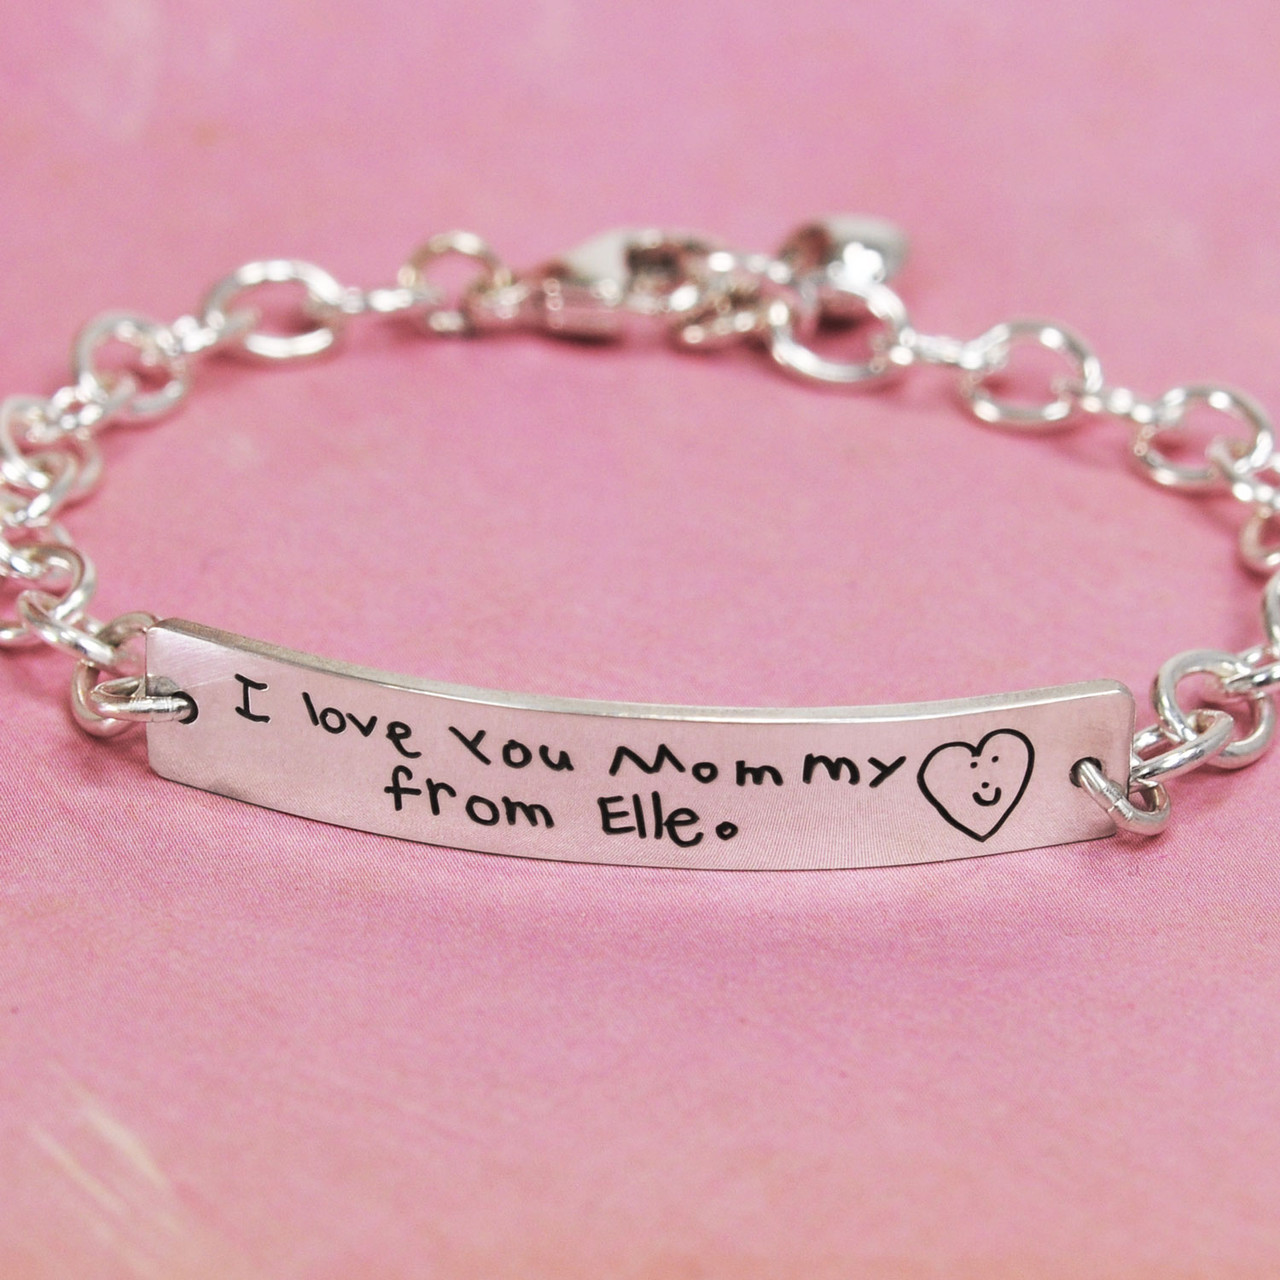 ID Bracelet with handwriting in sterling silver, shown from front